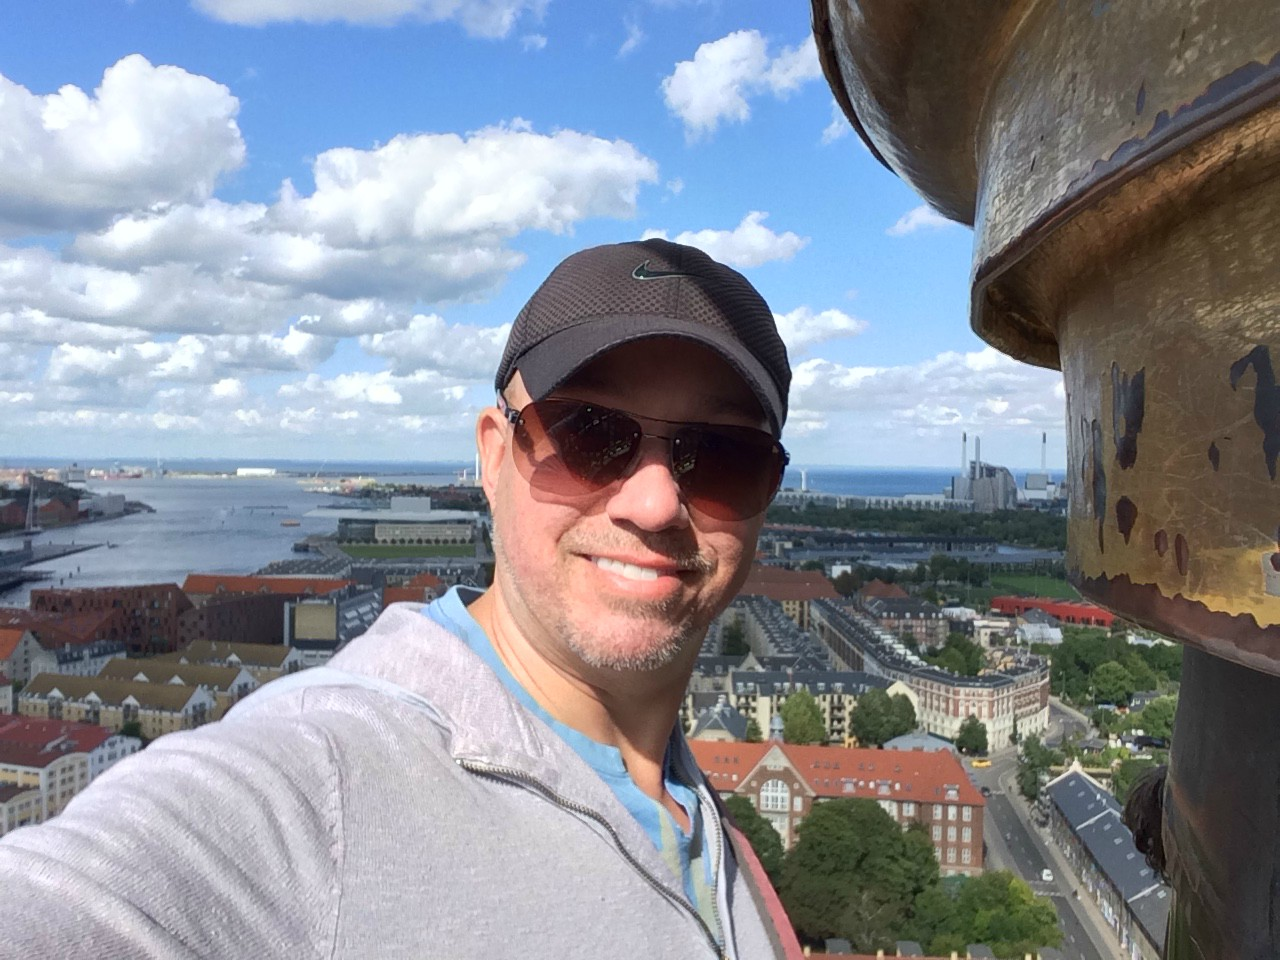 Brad says he's been fortunate enough to travel to all seven continents--impressive! Here he is in Copenhagen.